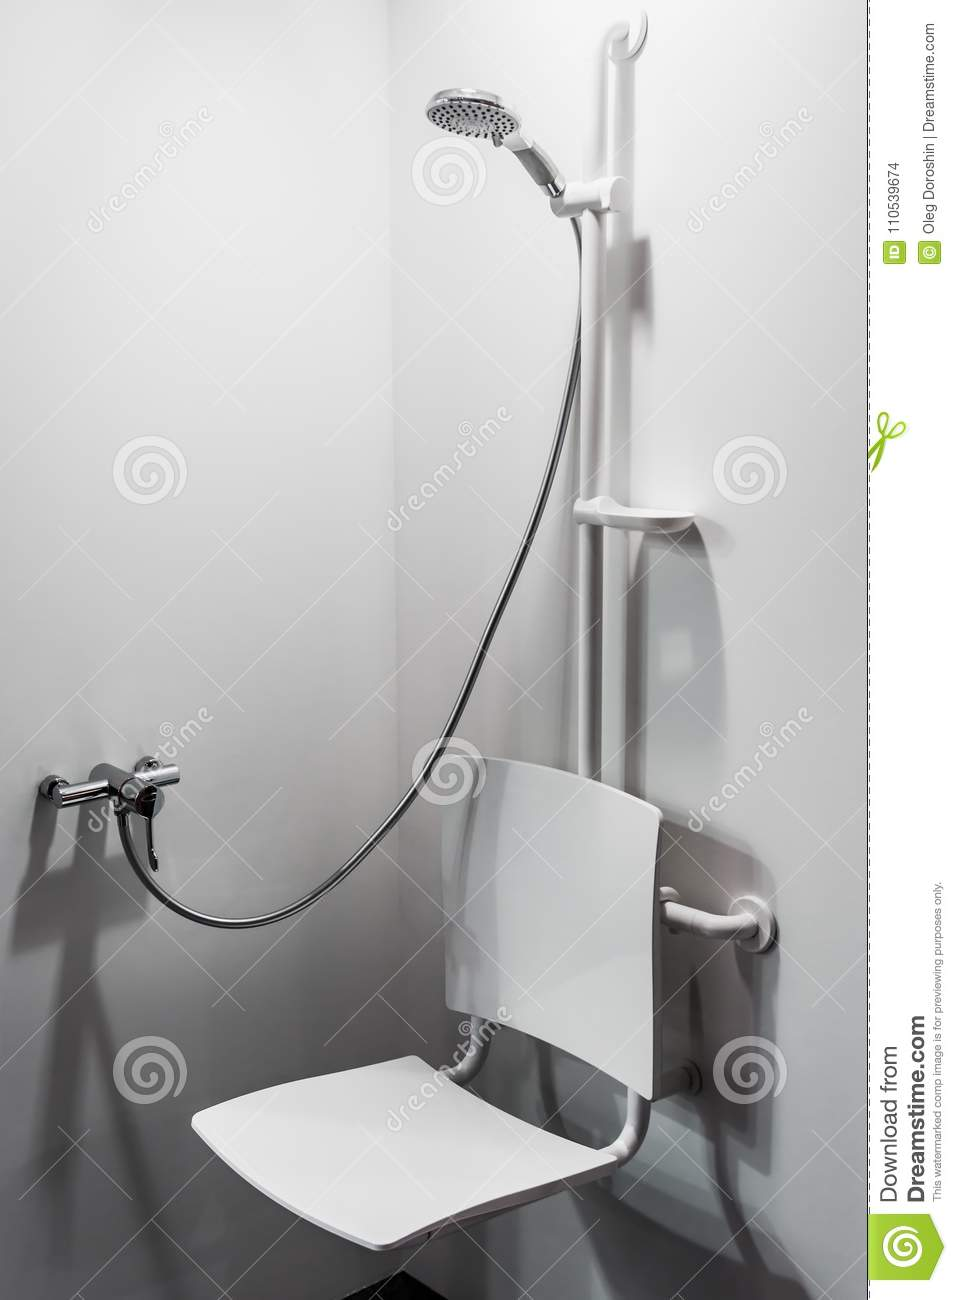 Shower With Seat And Grab Bars For Disabled And Elderly People Stock ...